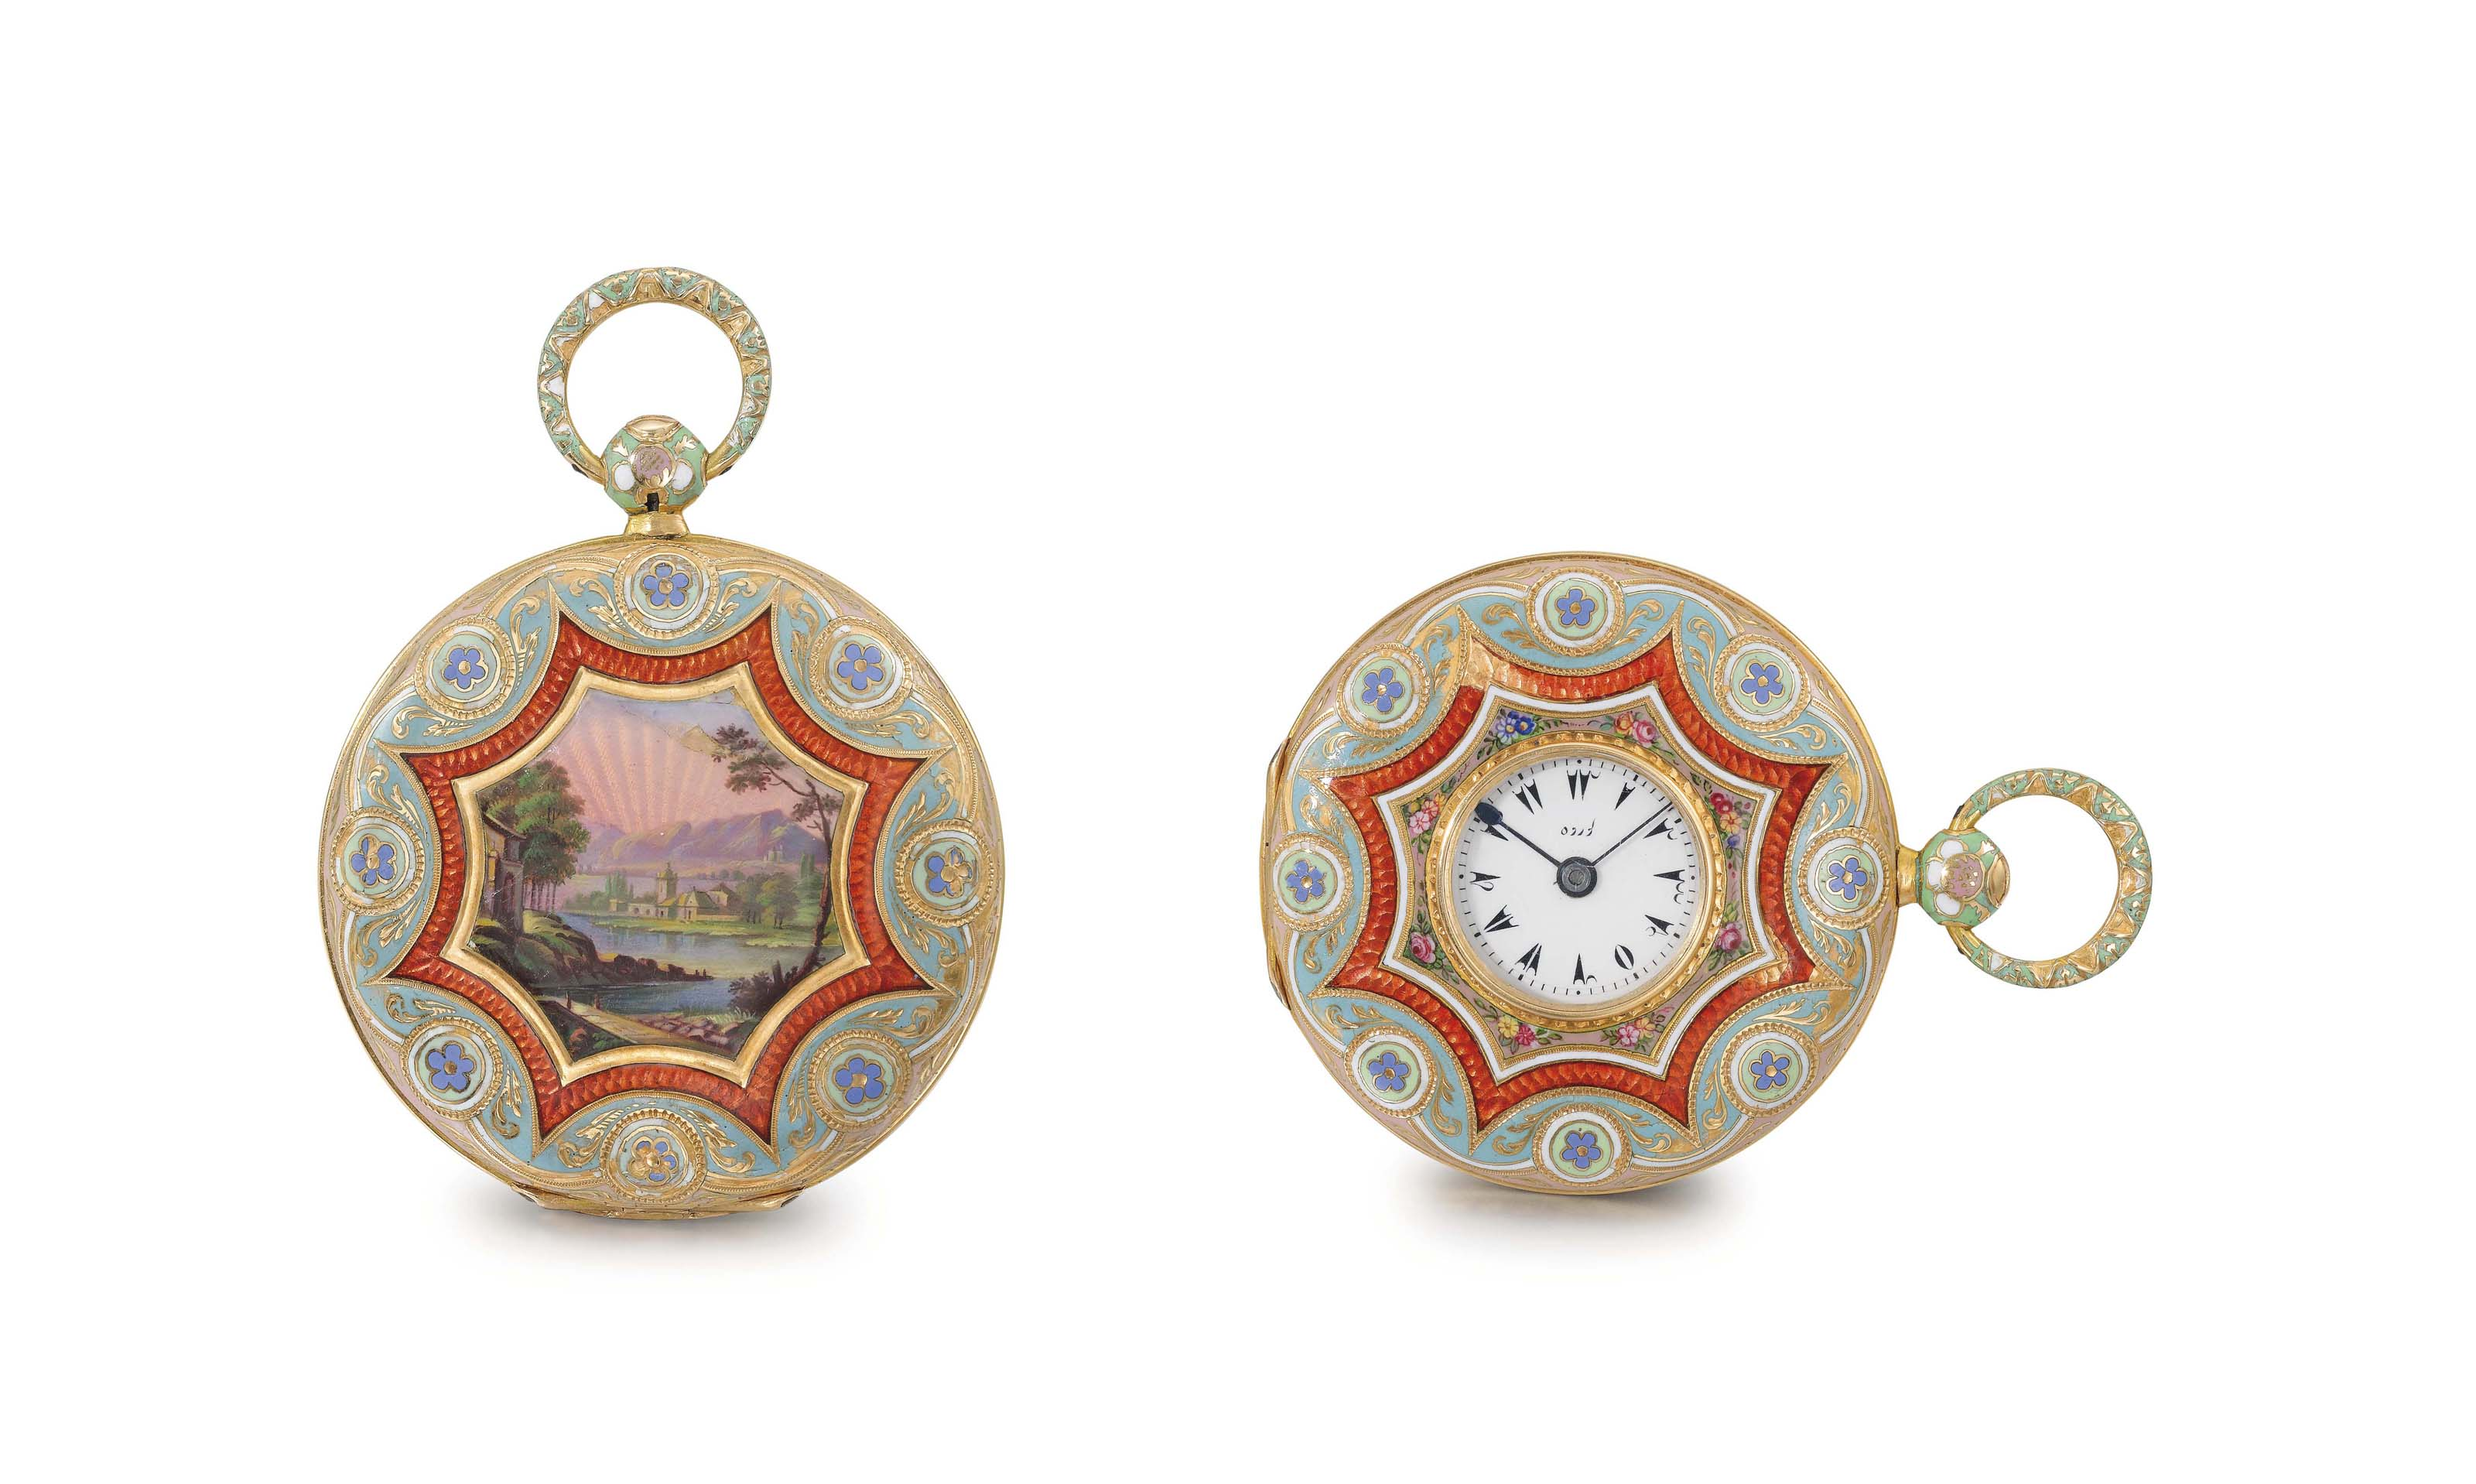 Leroy. A gold and enamel half hunter case keywound cylinder watch, made for the Turkish market